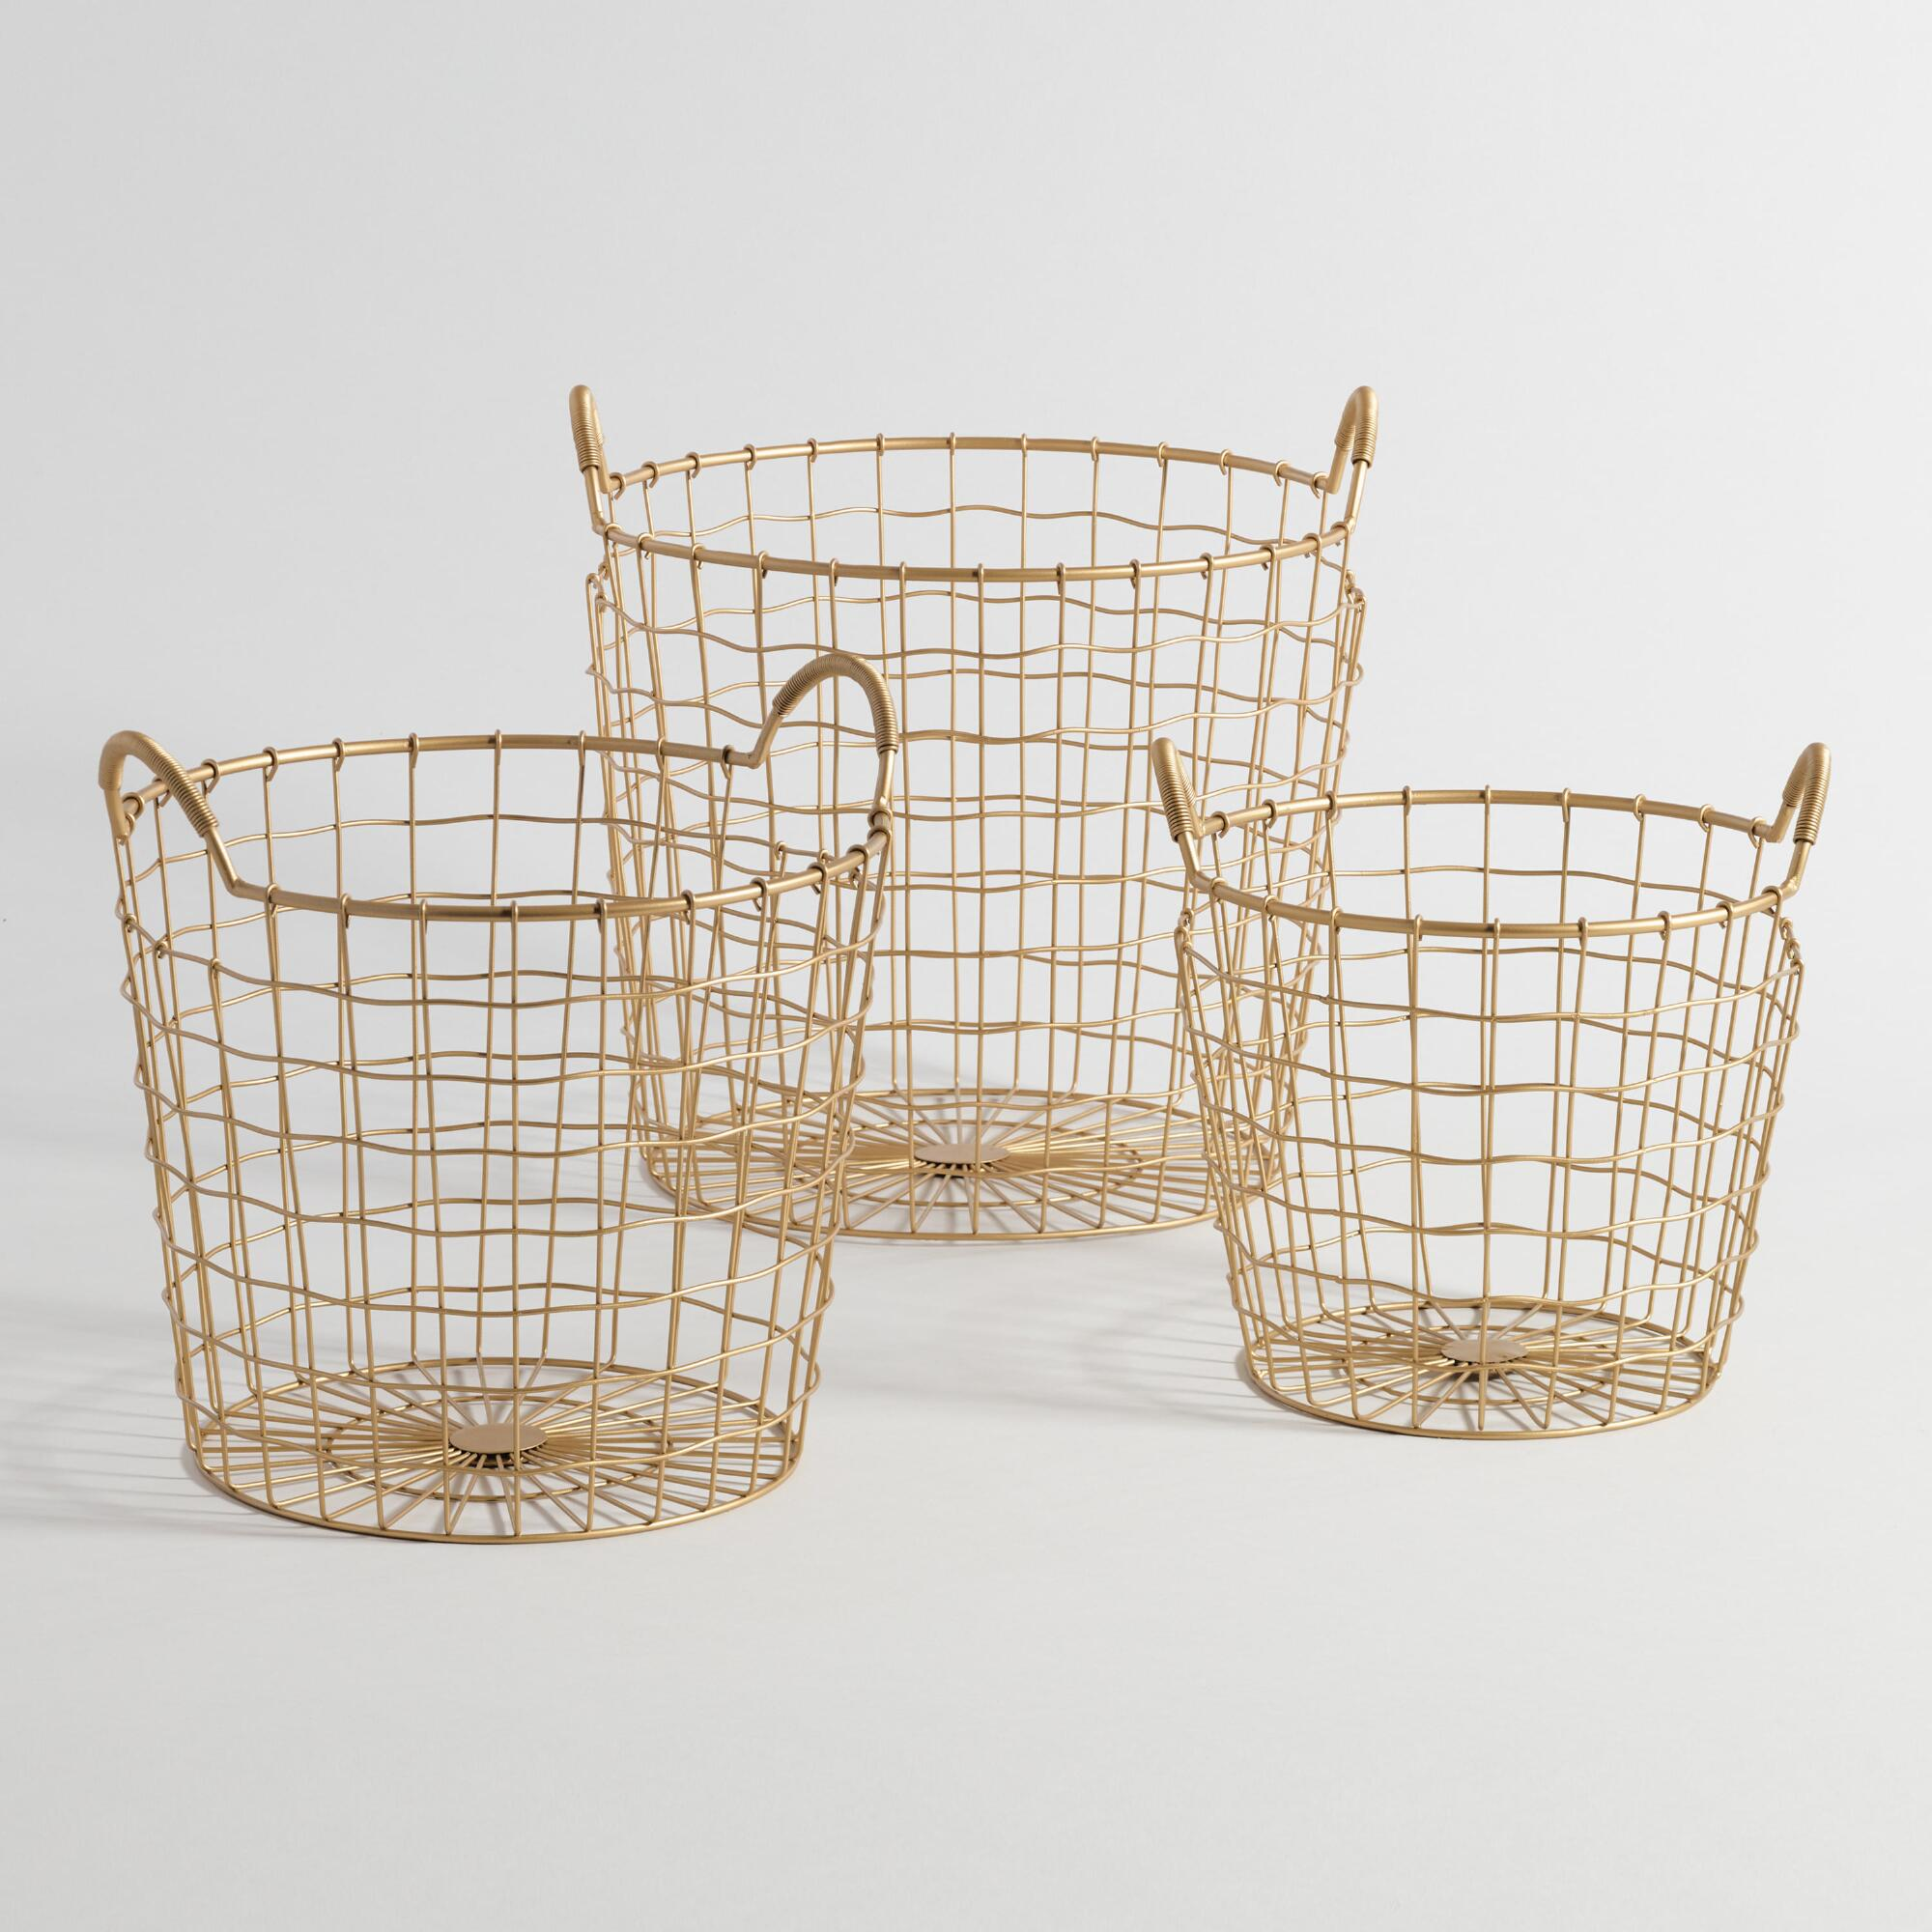 Metal basket can be wiped with a damp rag mDesign Farmhouse Decor Metal Wire Food Organizer Storage Bin Baskets with Handles for Kitchen Cabinets, Pantry, Bathroom, Laundry Room, Closets, Garage - 16 x 9 x 6 in. - Bronze. by mDesign. $ $ 16 99 Prime. FREE Shipping on eligible orders.